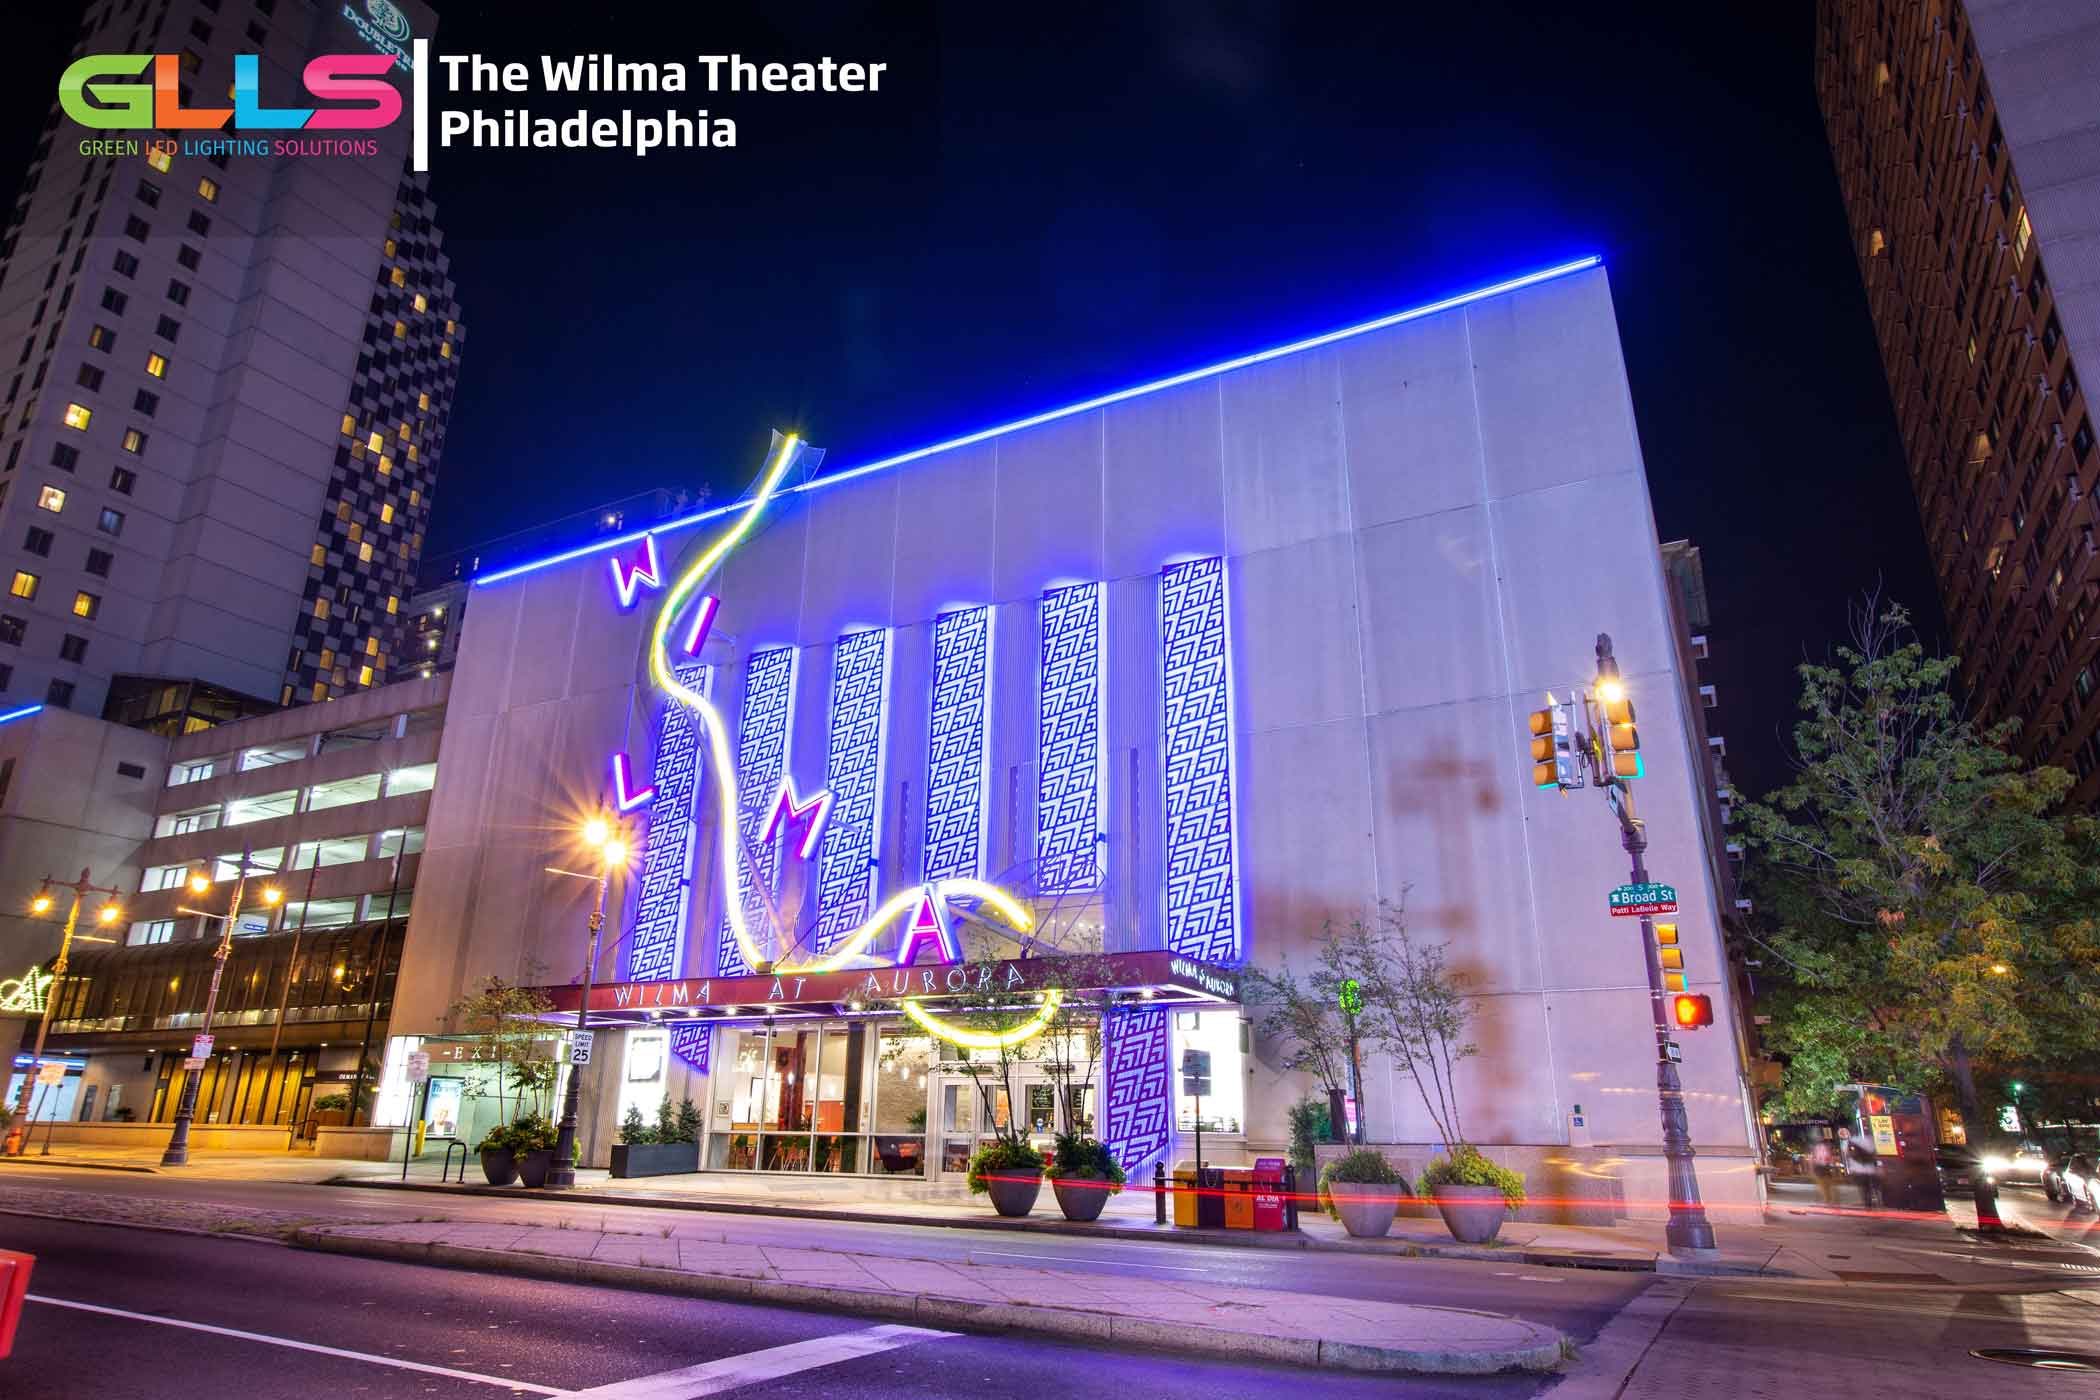 The-Wilma-Theater-Philadelphia-Building